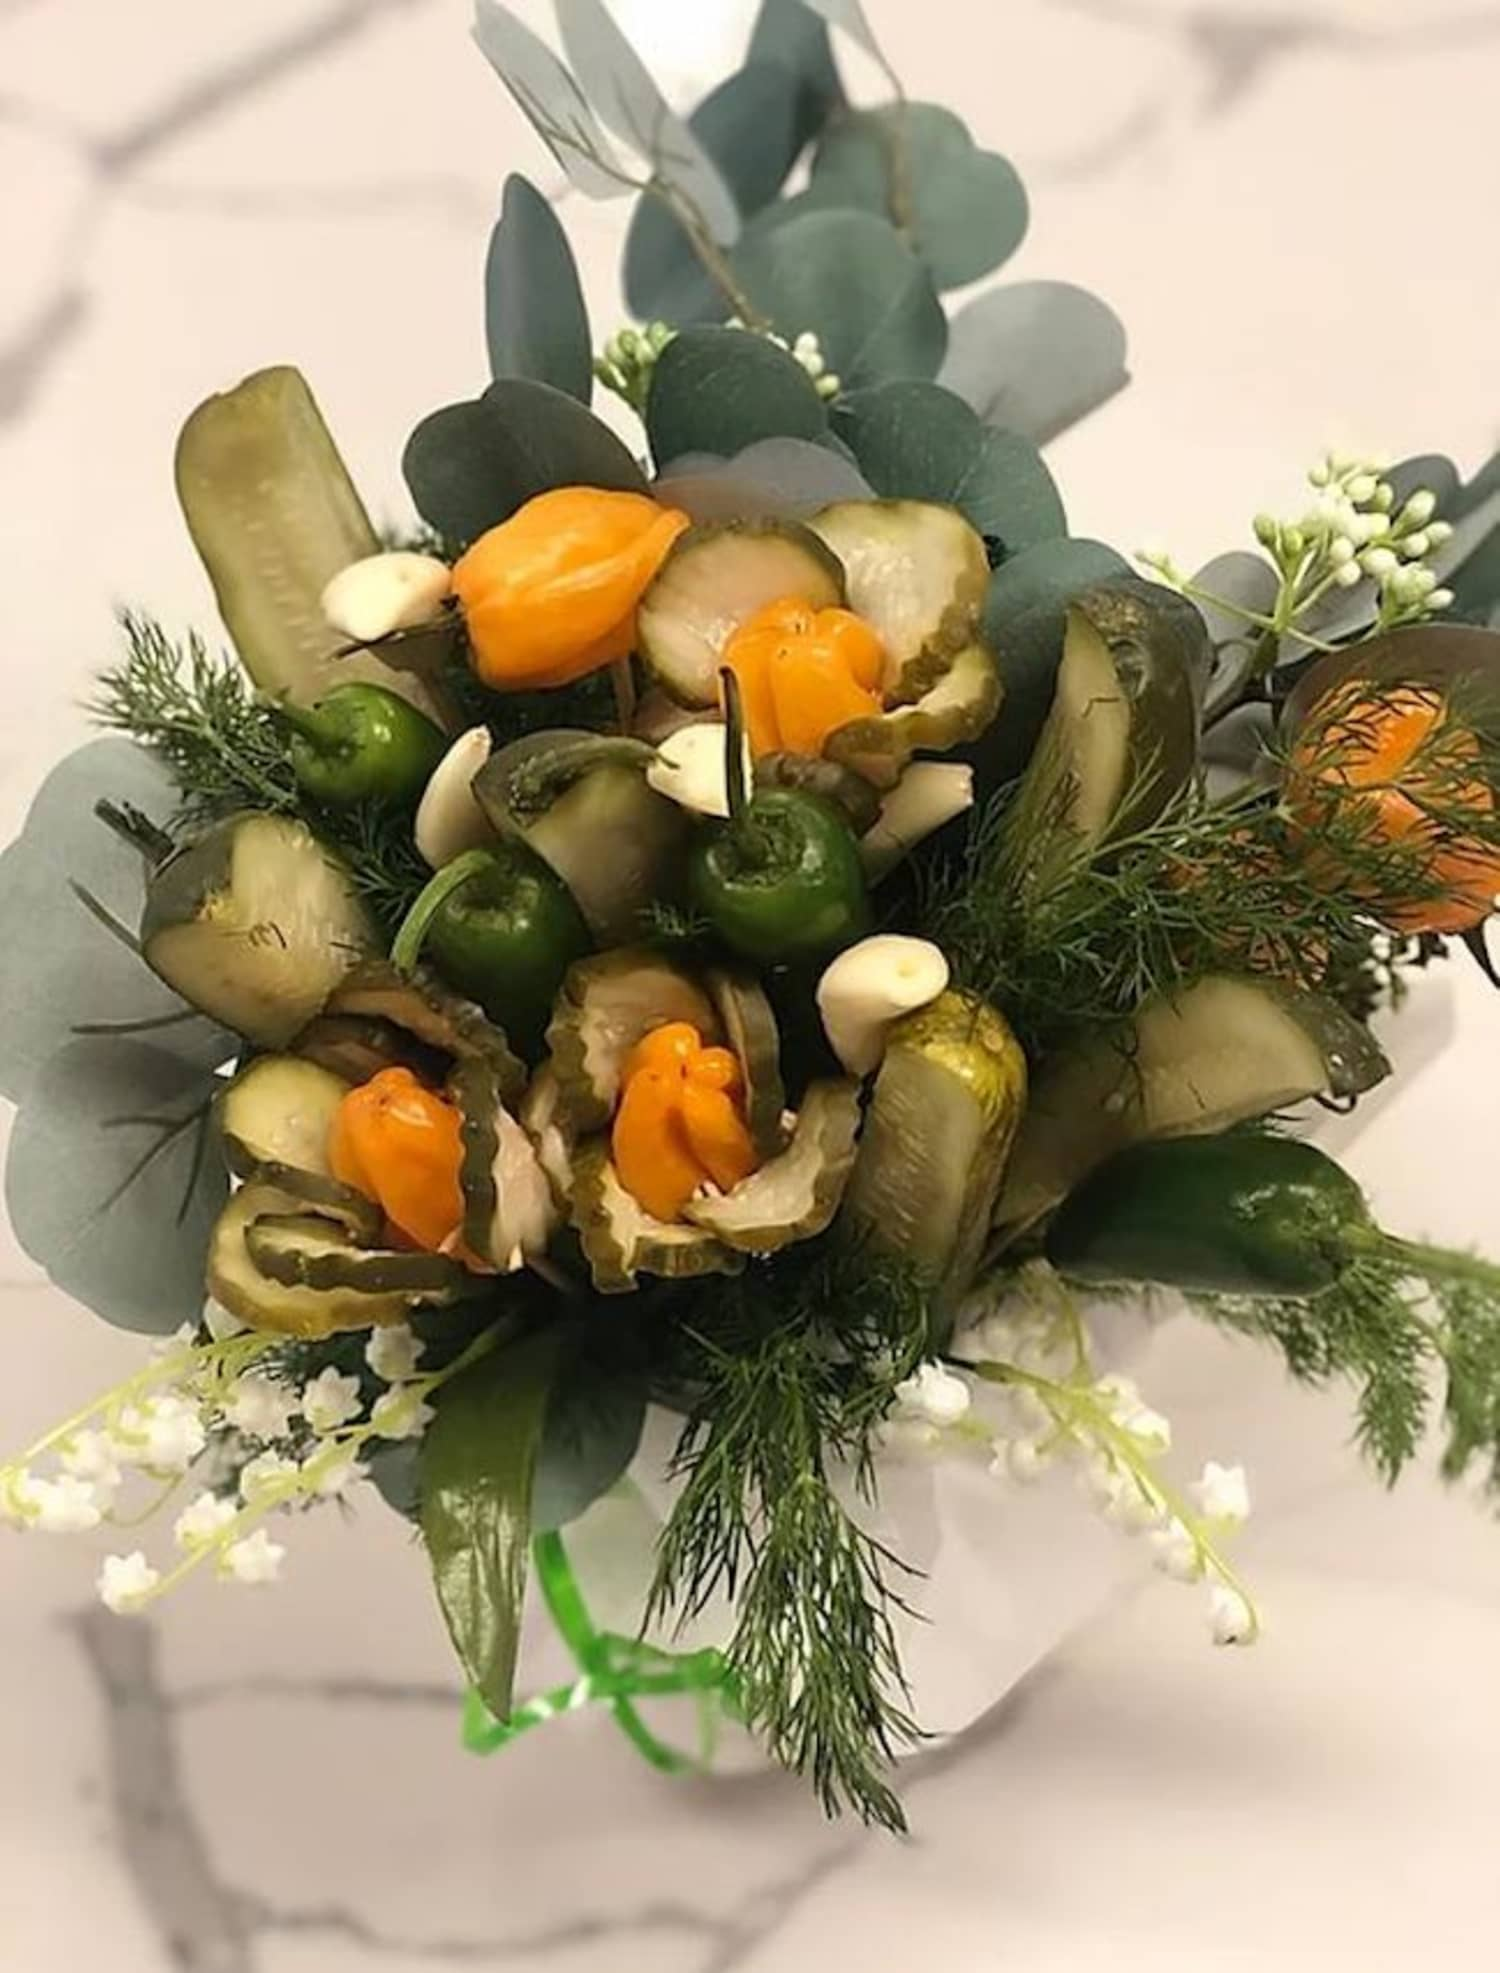 Forget Flowers, Get Your S.O. a Bouquet of Pickles for Valentine's Day